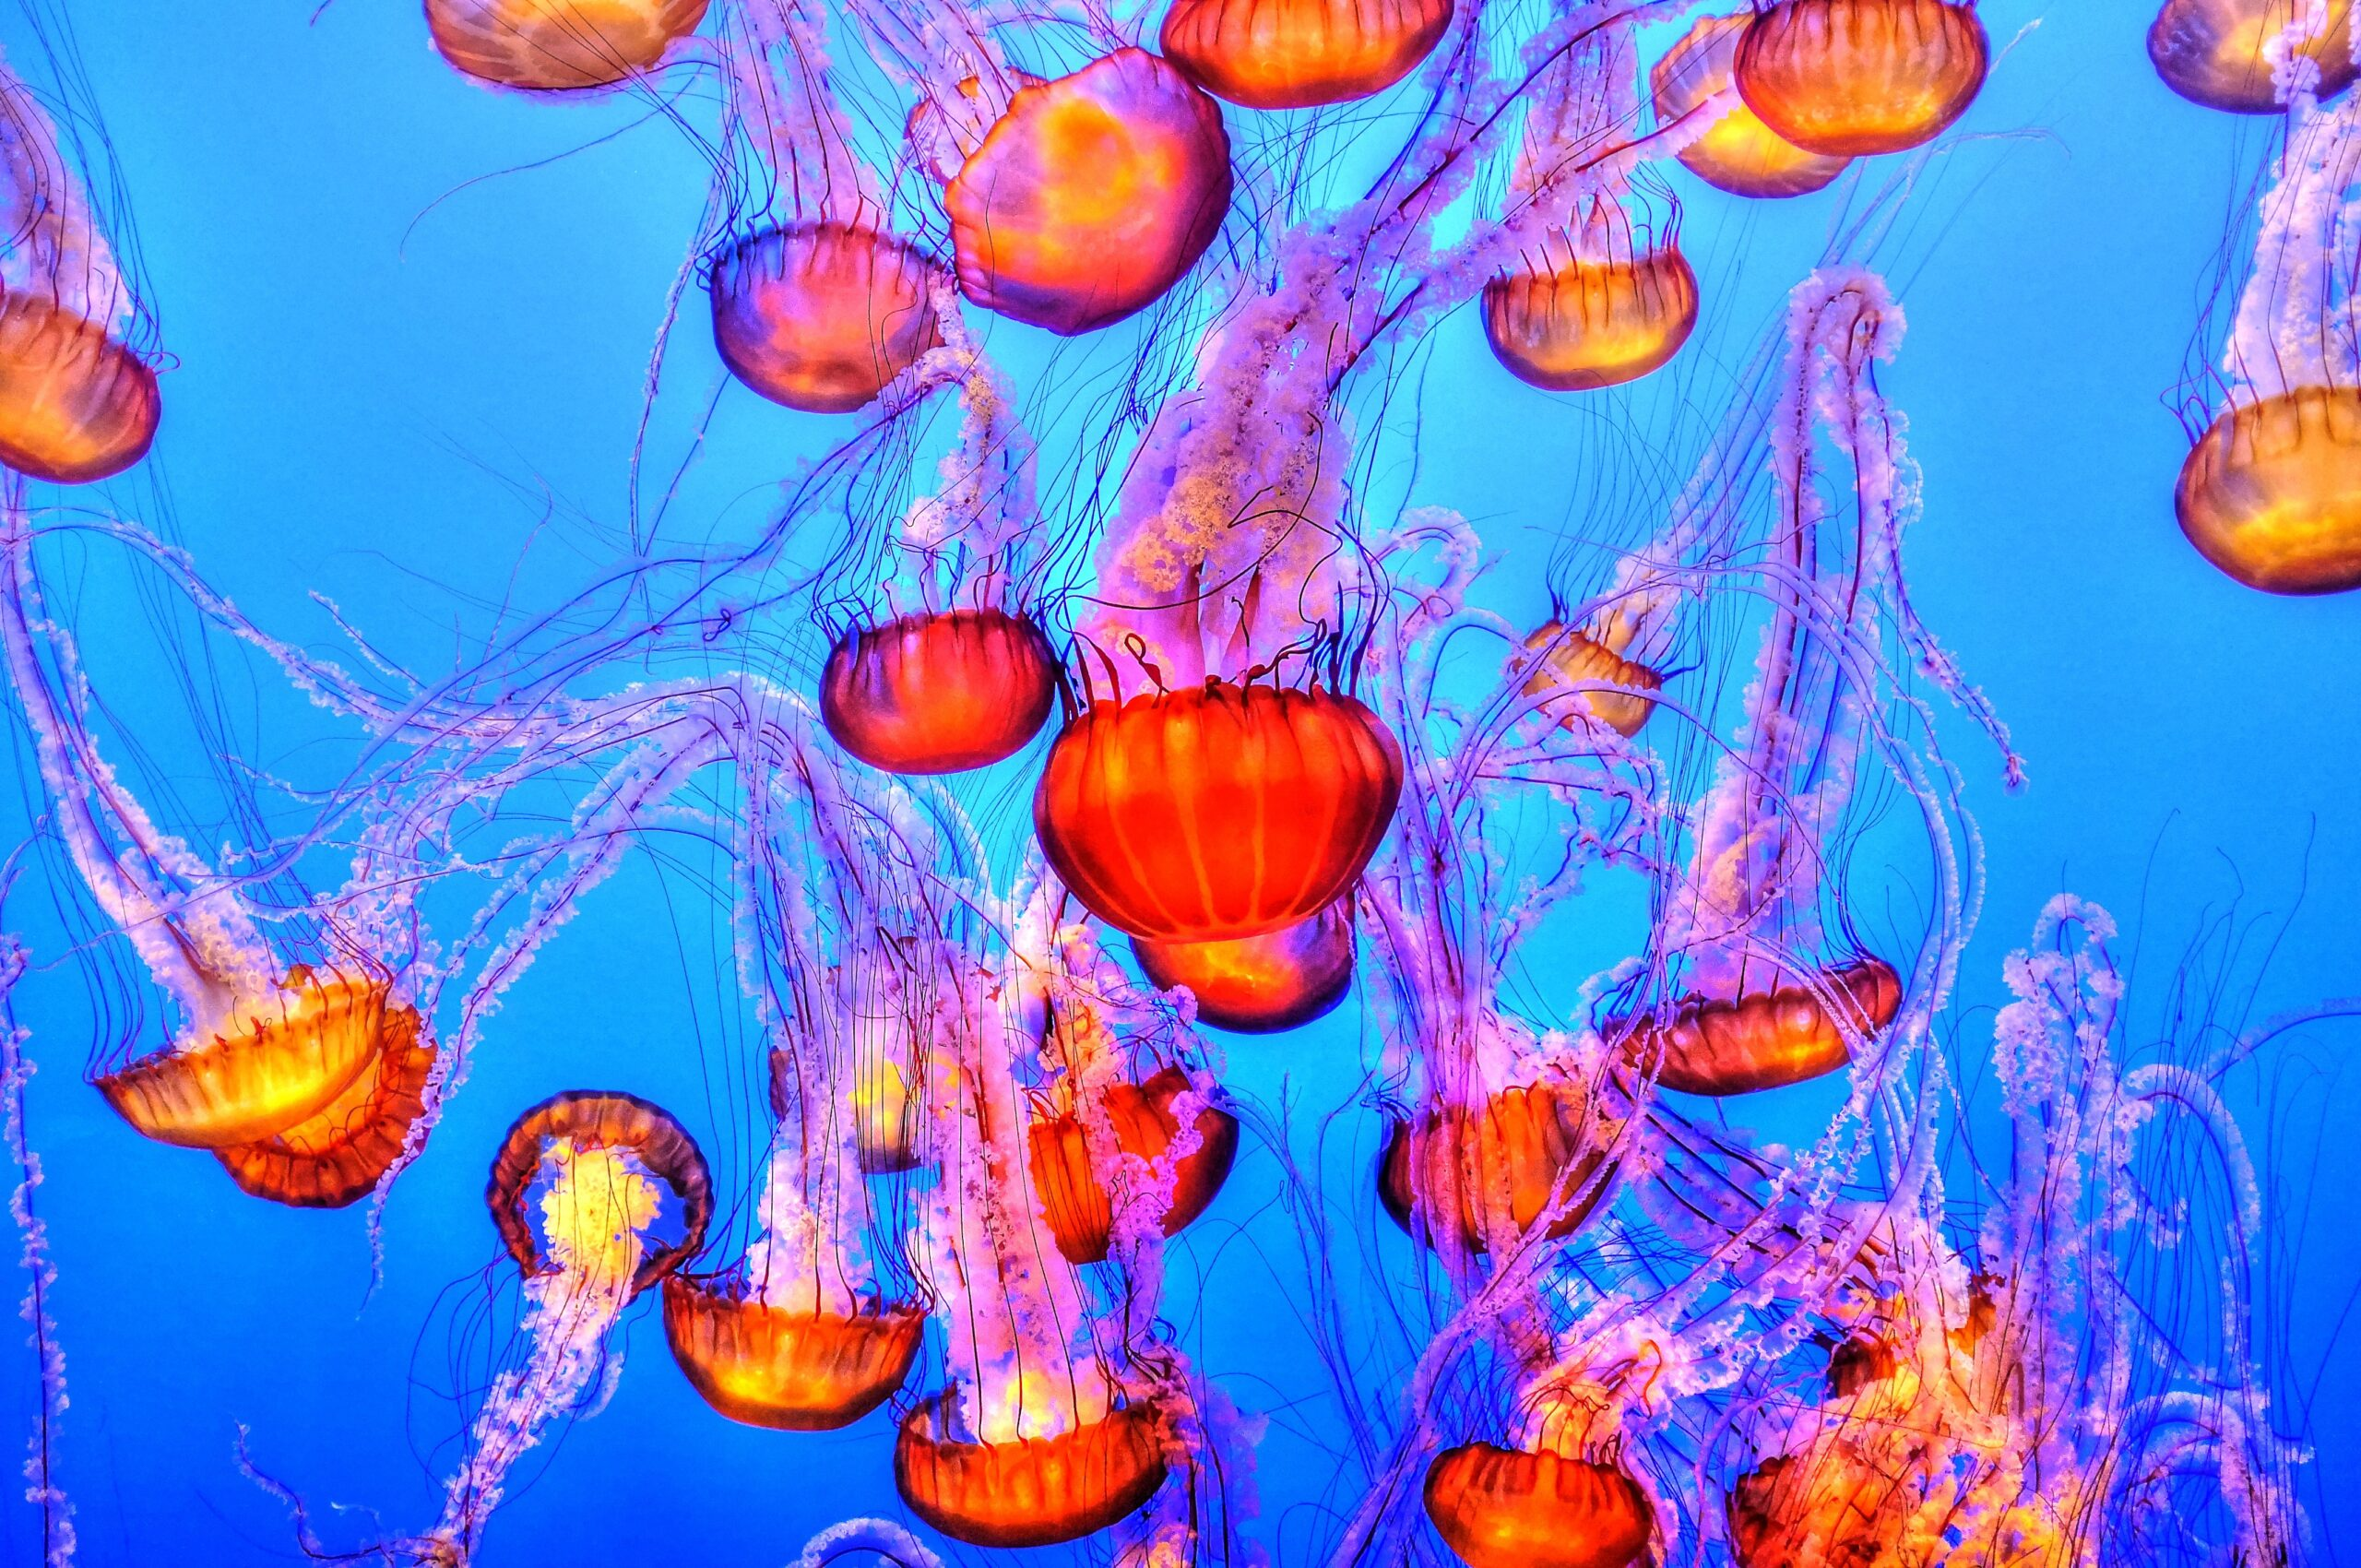 You're treating jellyfish stings all wrong